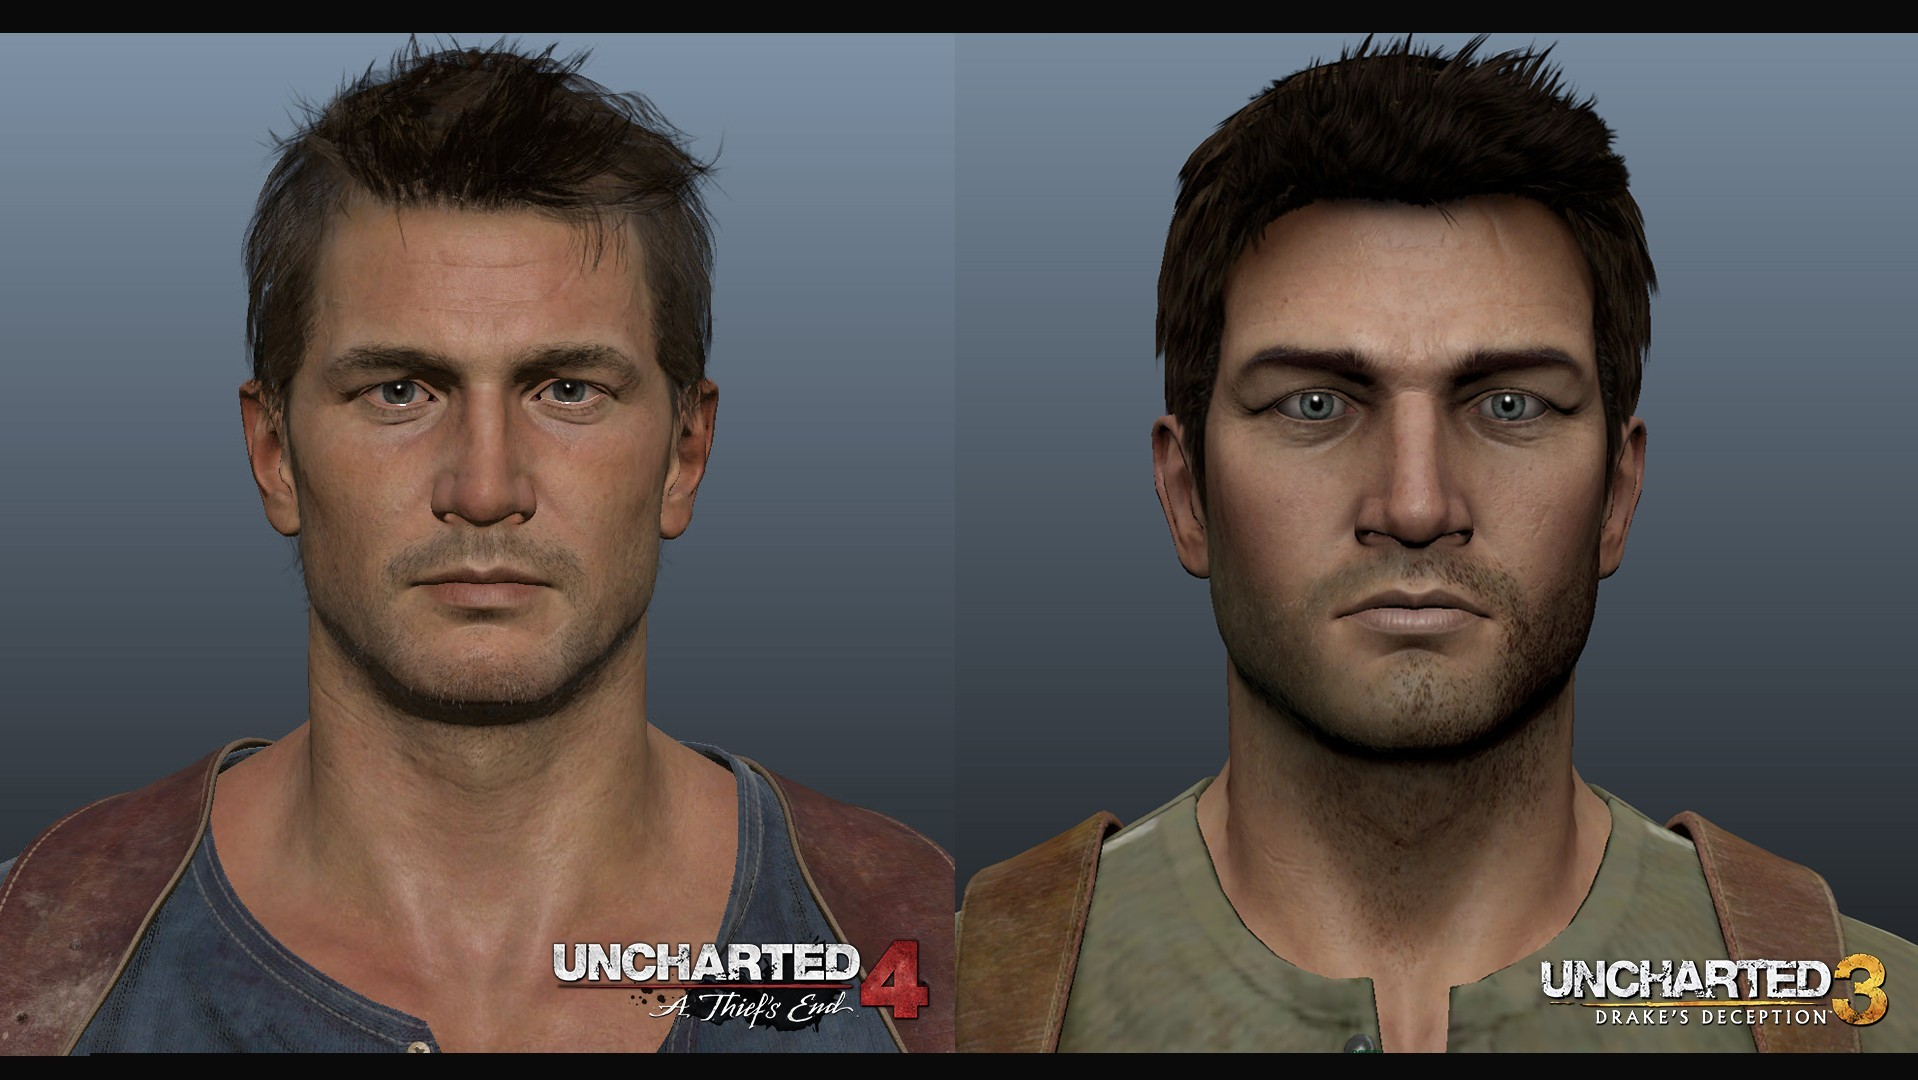 naughty dog is focusing just on uncharted 4 no plans for uncharted